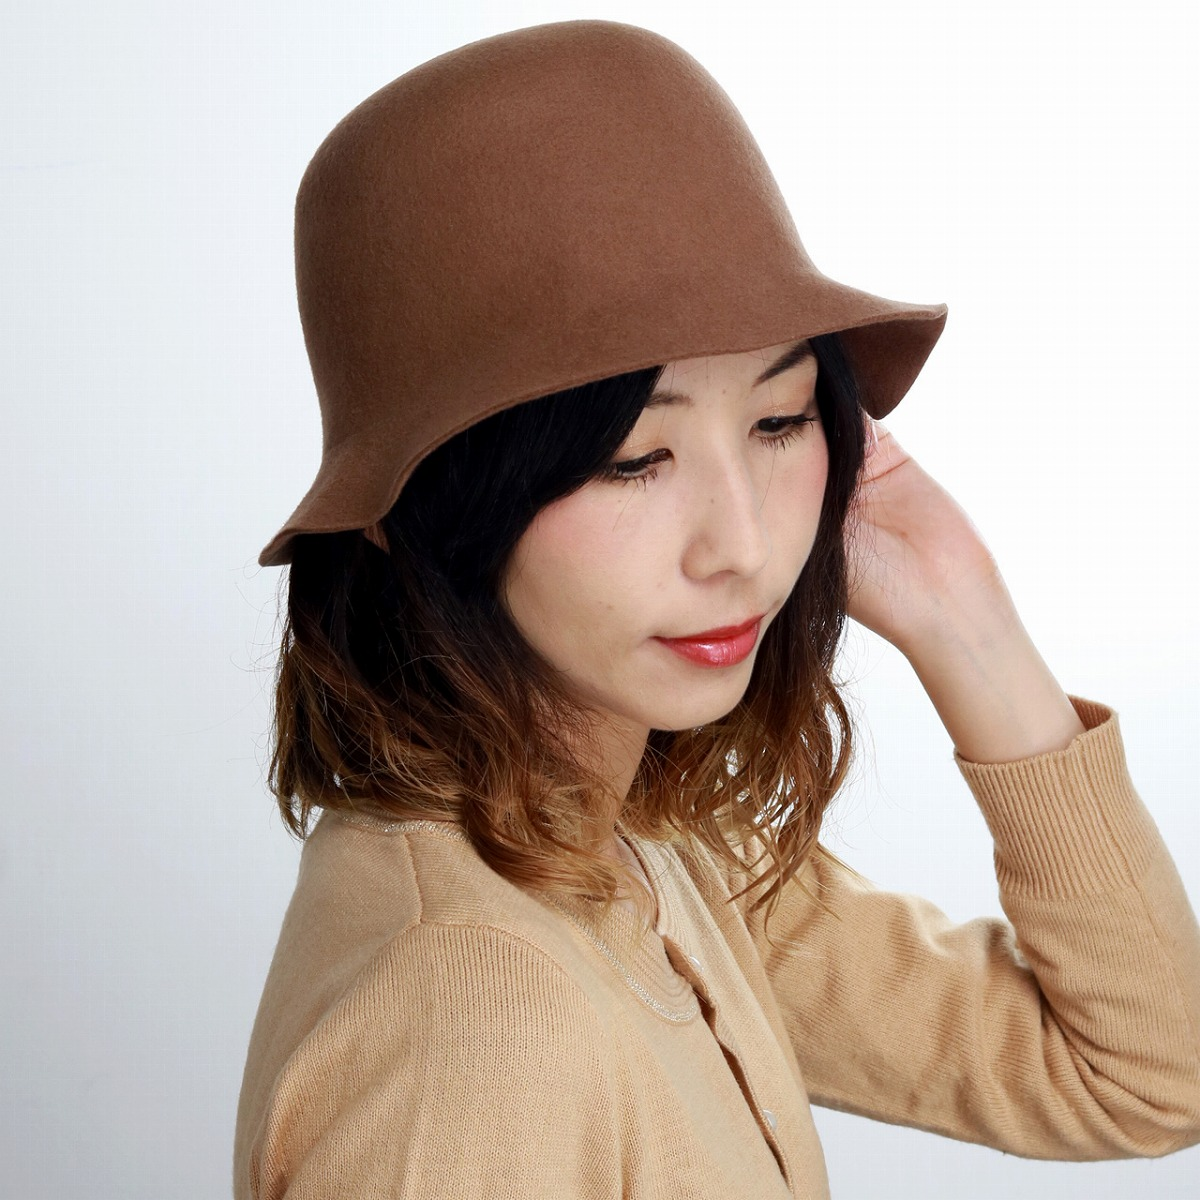 shin pull woman hat rumi woo seth hat refined felt hat tulip 57cm mrs coordinates camel hat woman christmas present gift made in mazurka hat